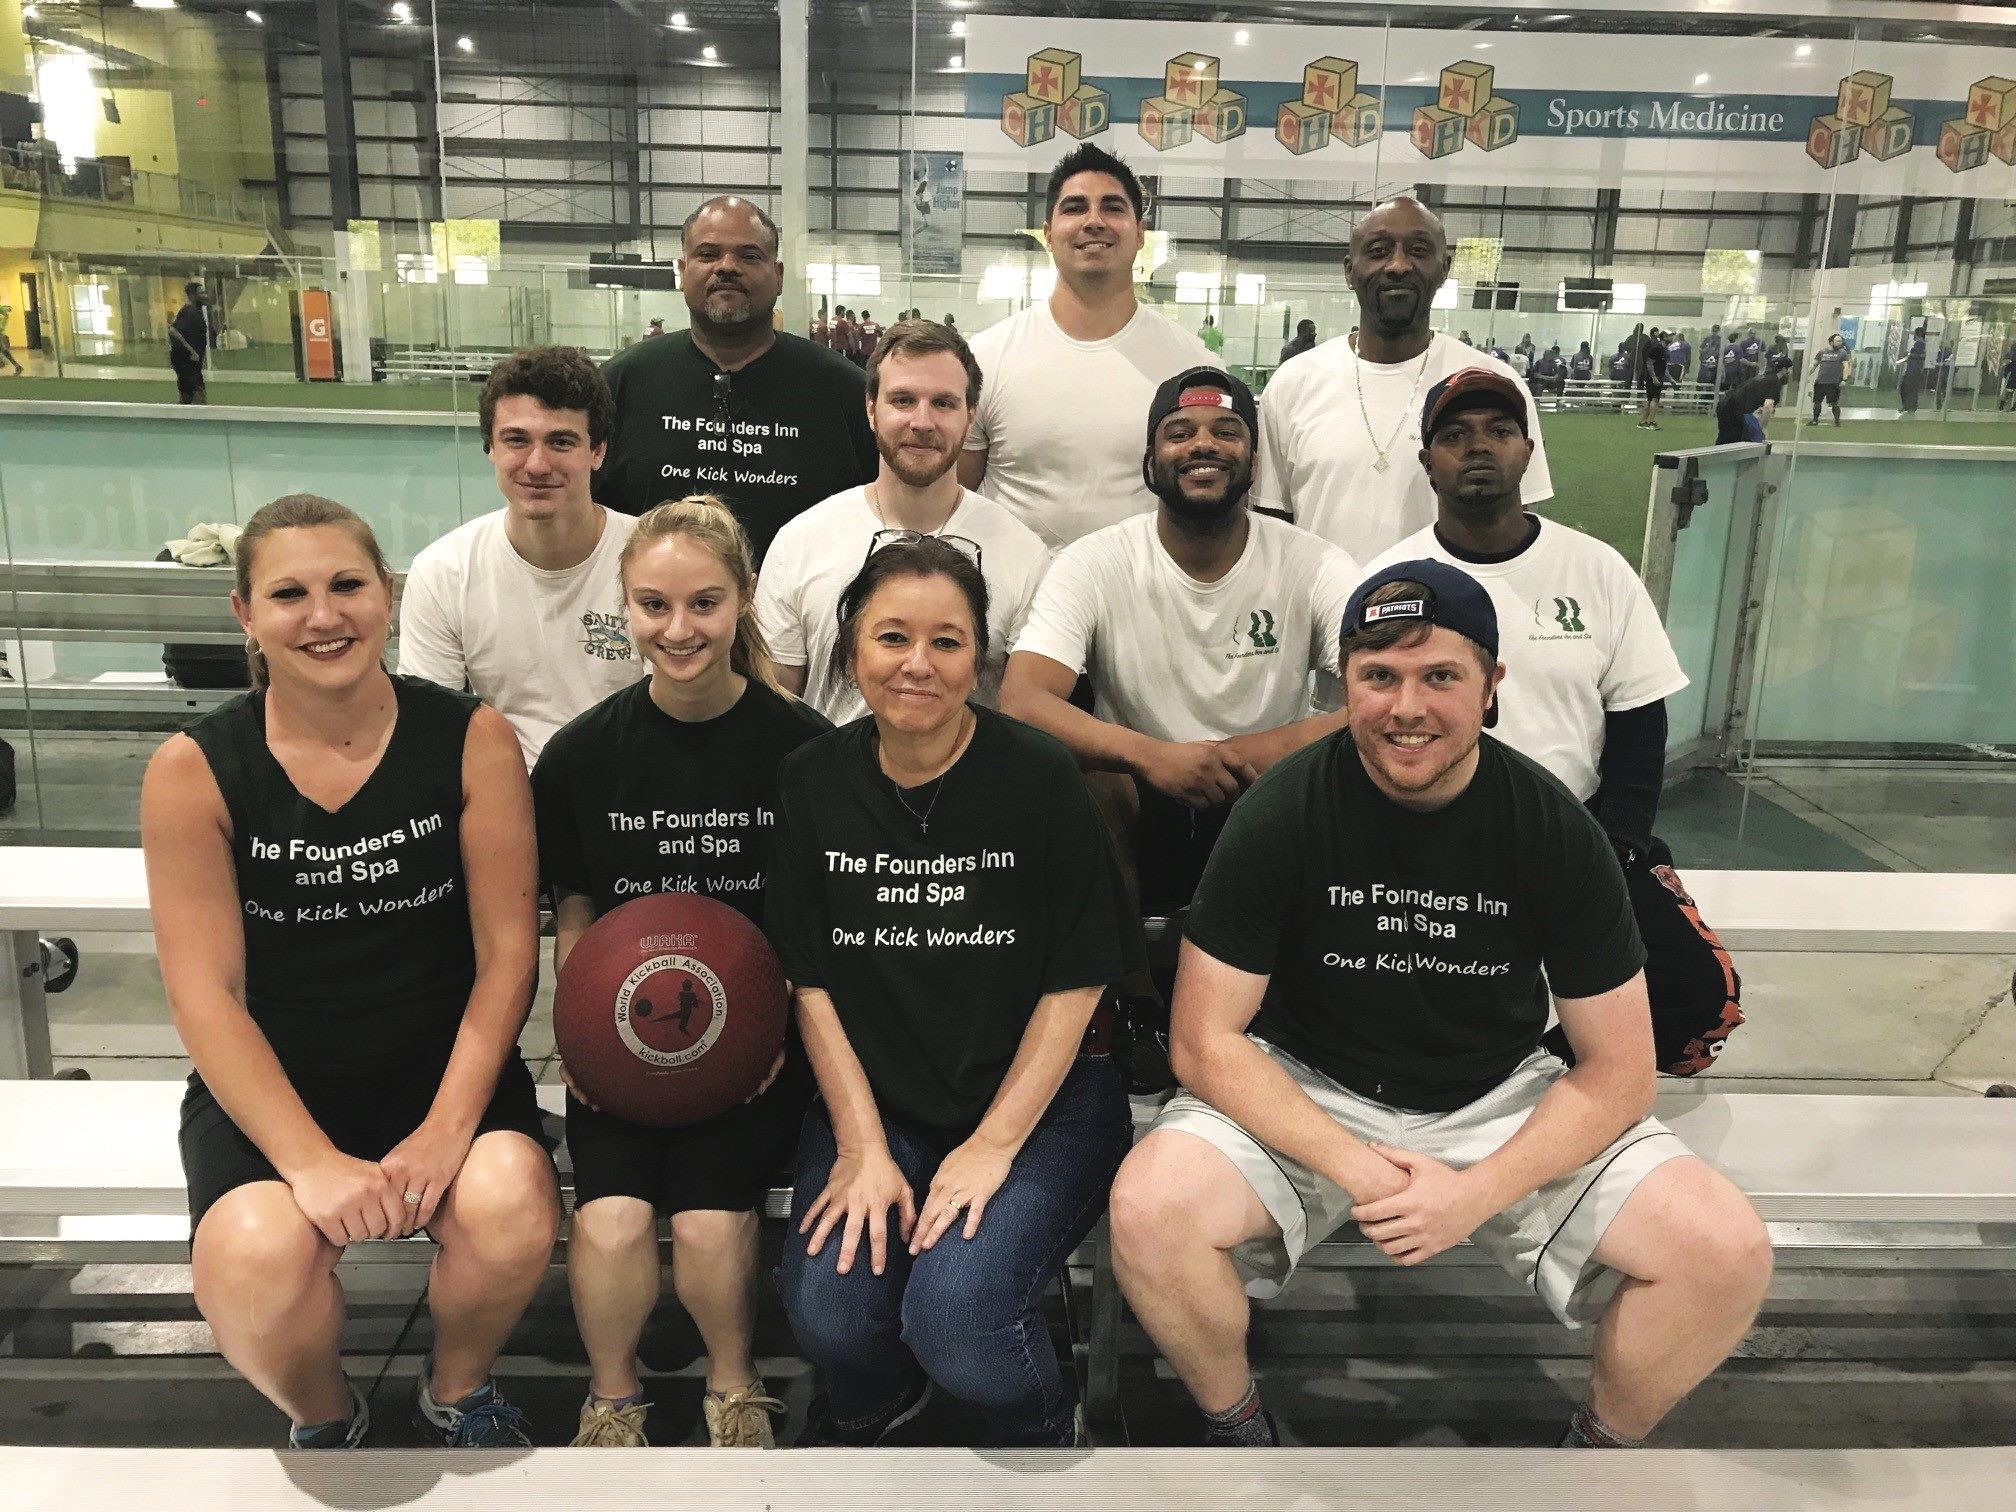 Founders Inn employees playing kickball